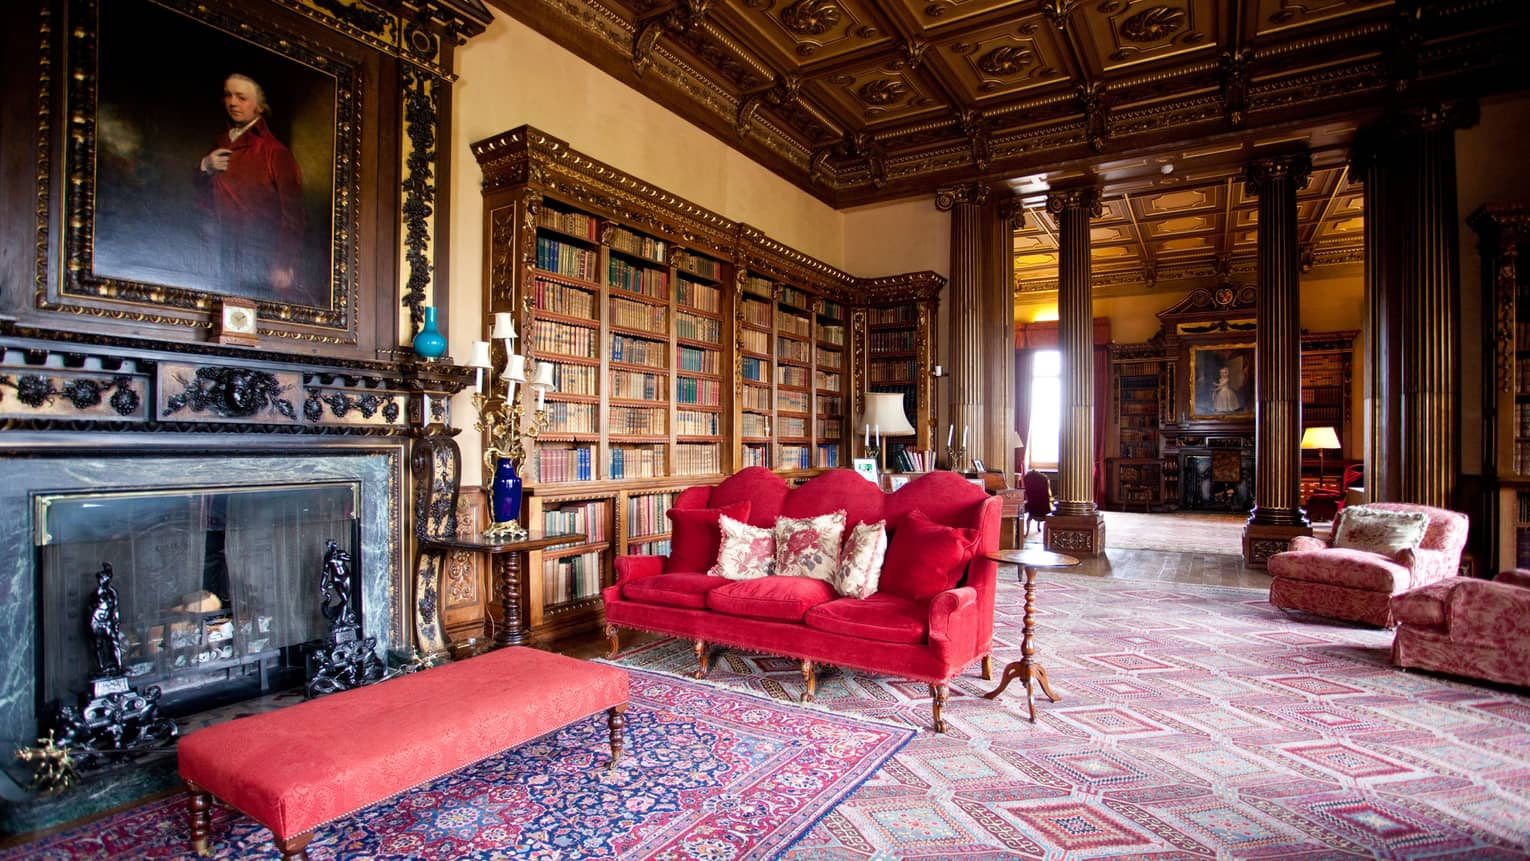 Red velvet sofa, bench in front of antique iron fireplace under library shelves, soaring ceilings